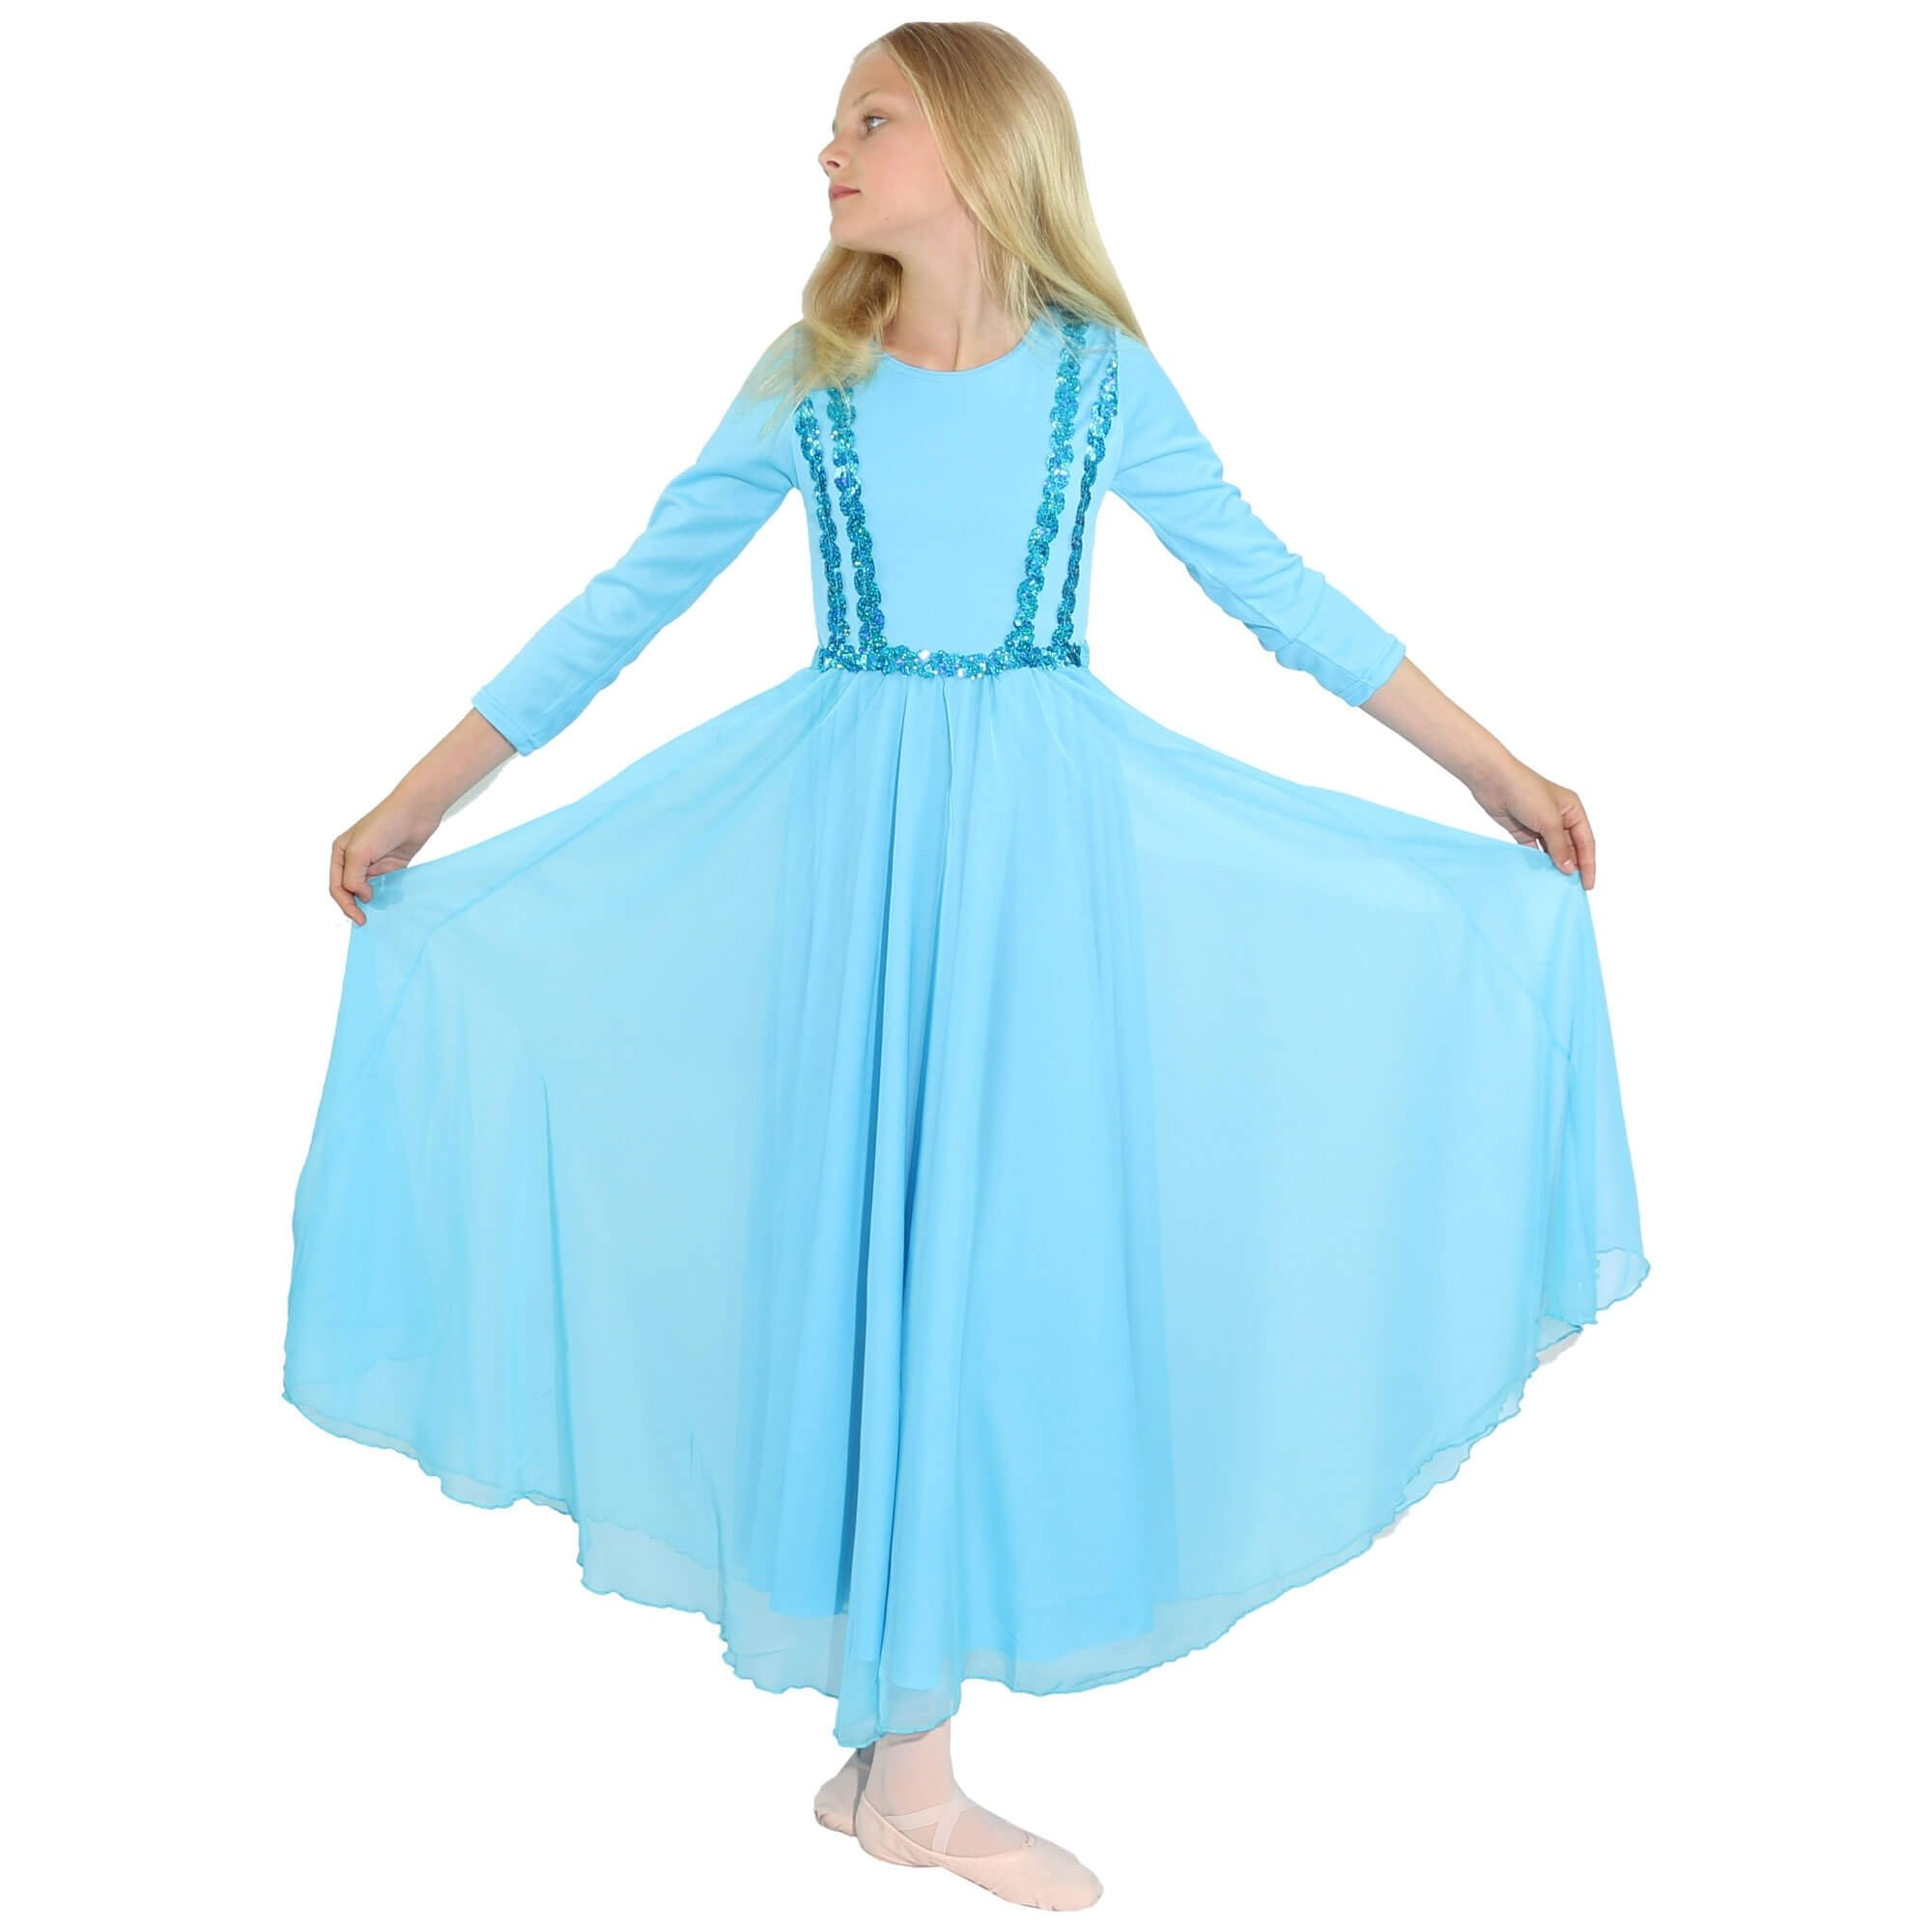 Danzcue Child Full Length Vivid Chiffon Dress